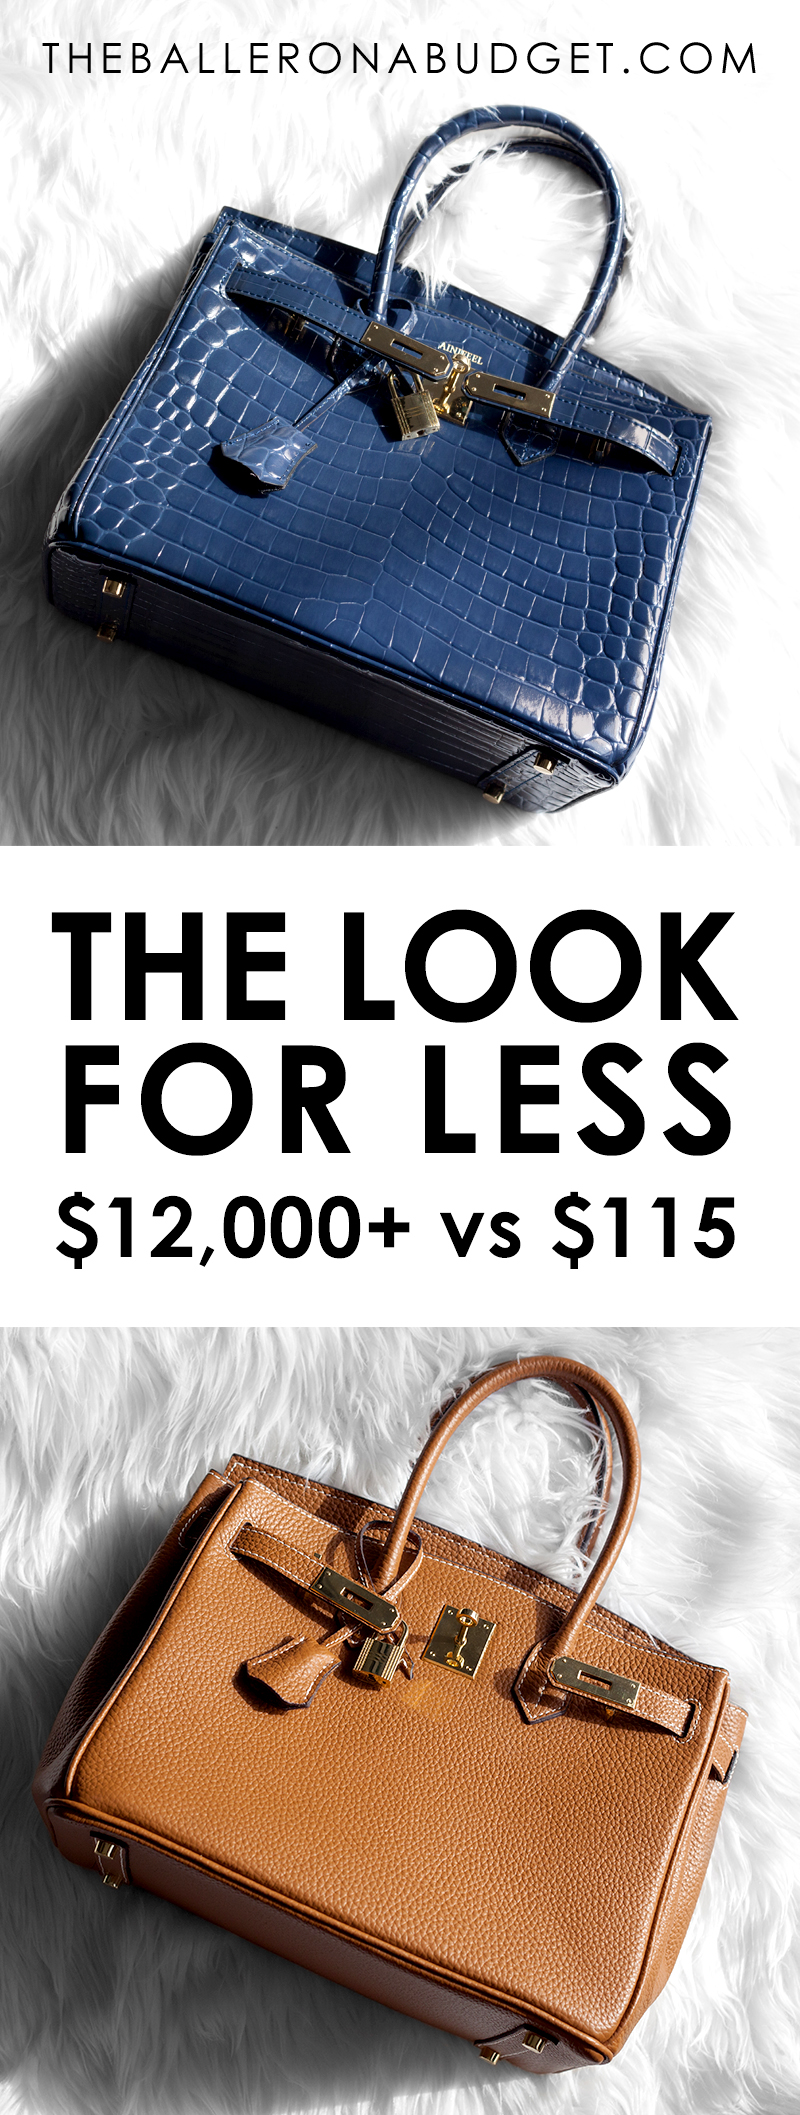 Fan of the expensive Hermés Birkin? Here are 4 gorgeous and high-quality designer-inspired bags from Ainifeel, from the standard Togo leather, to crocodile, ostrich and more. These quality handbags are between only $100 - $200! - www.theballeronabudget.com